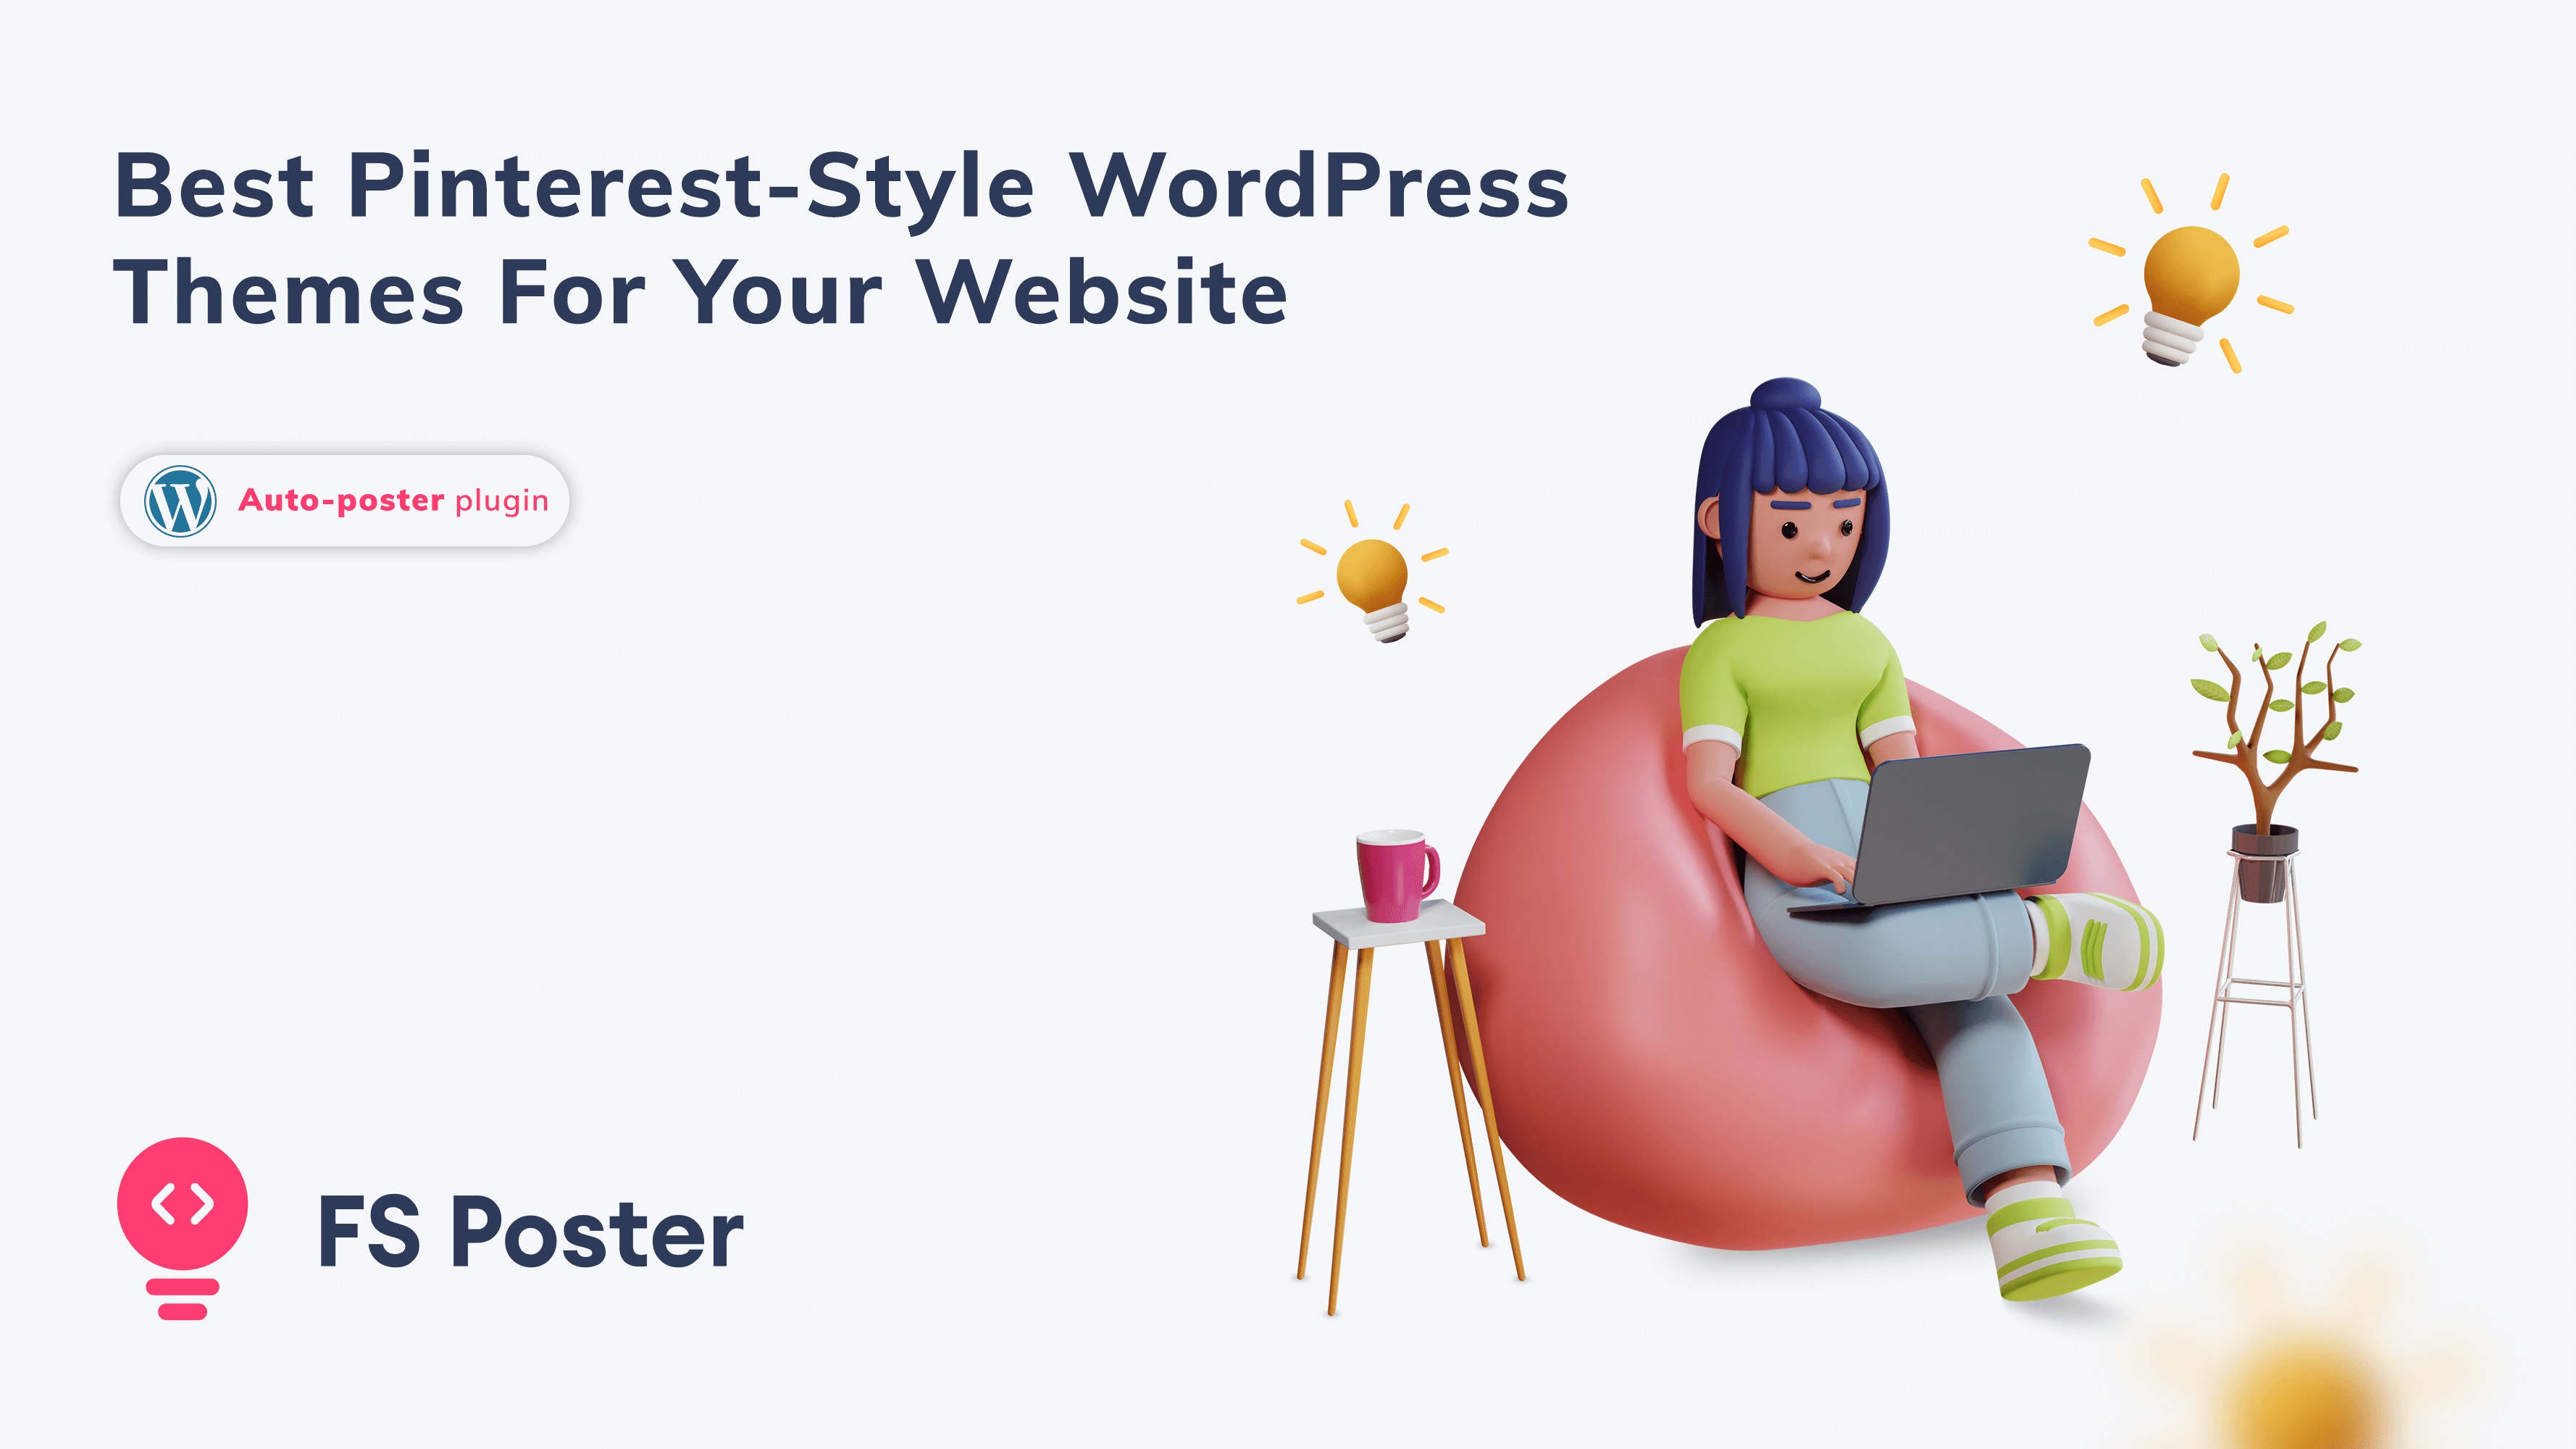 Best Pinterest-style WordPress themes for your website